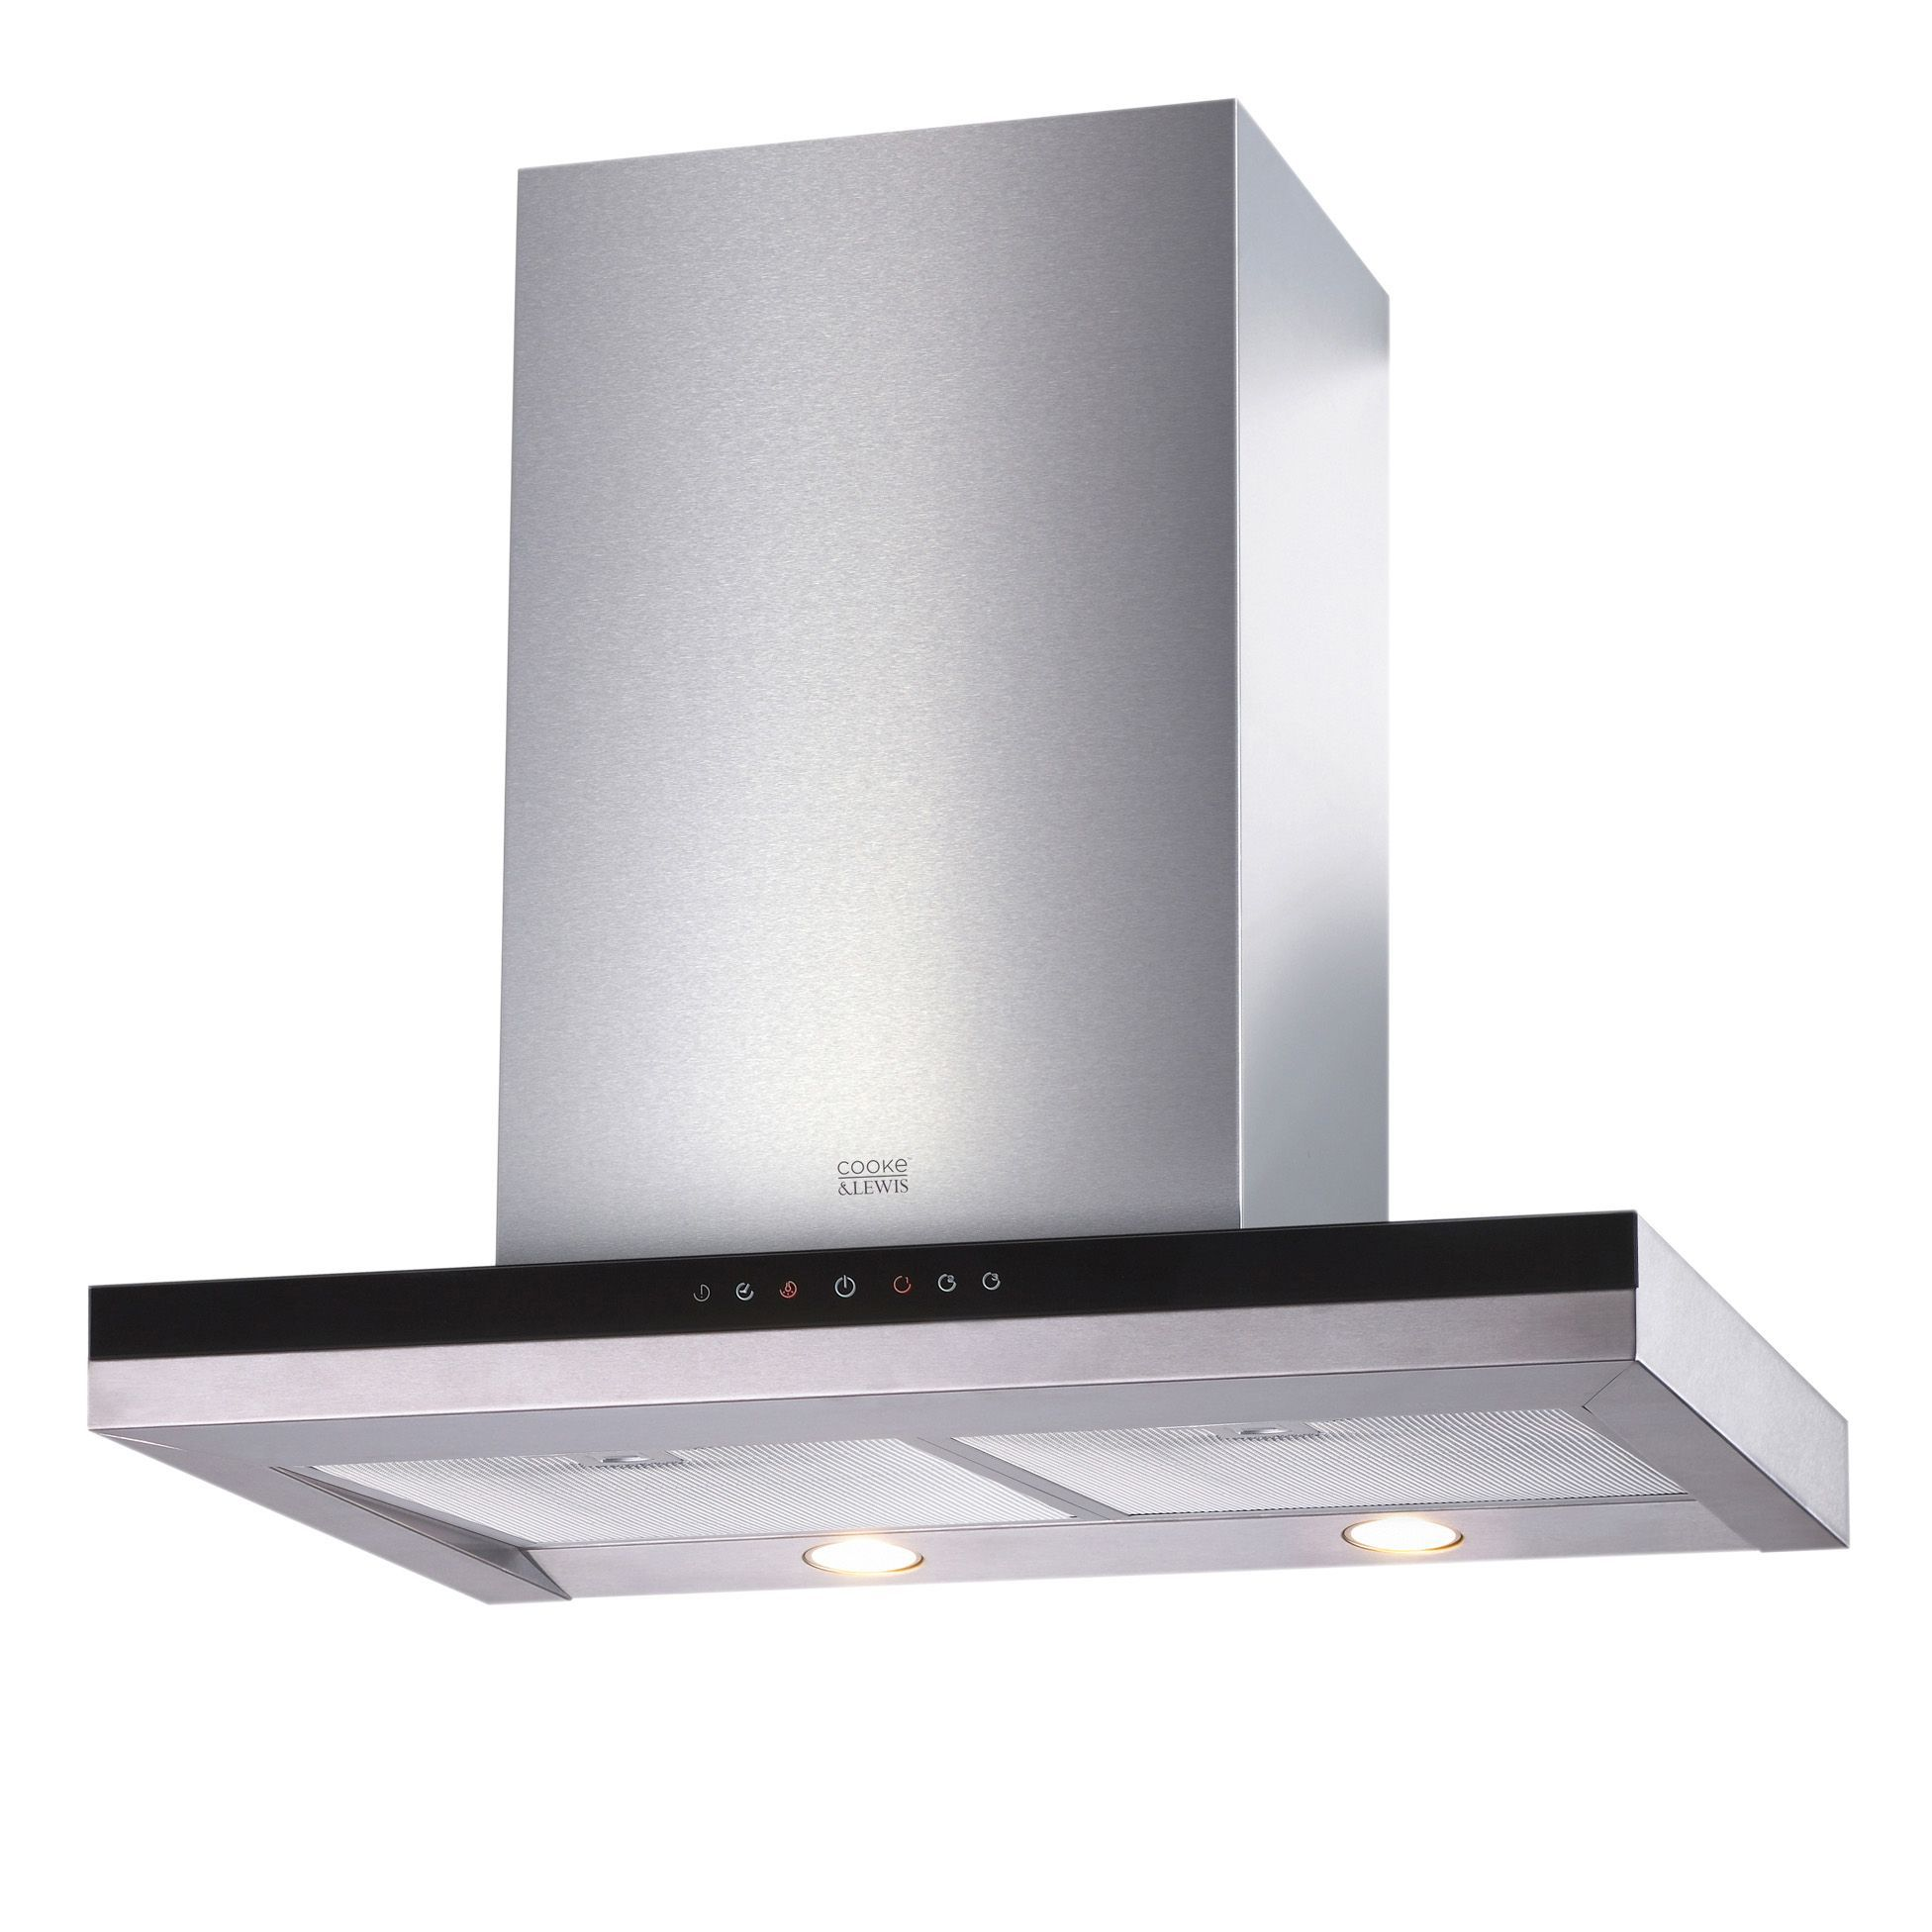 cooke lewis clbhgh 90 stainless steel box cooker hood w 900mm departments diy at b q. Black Bedroom Furniture Sets. Home Design Ideas